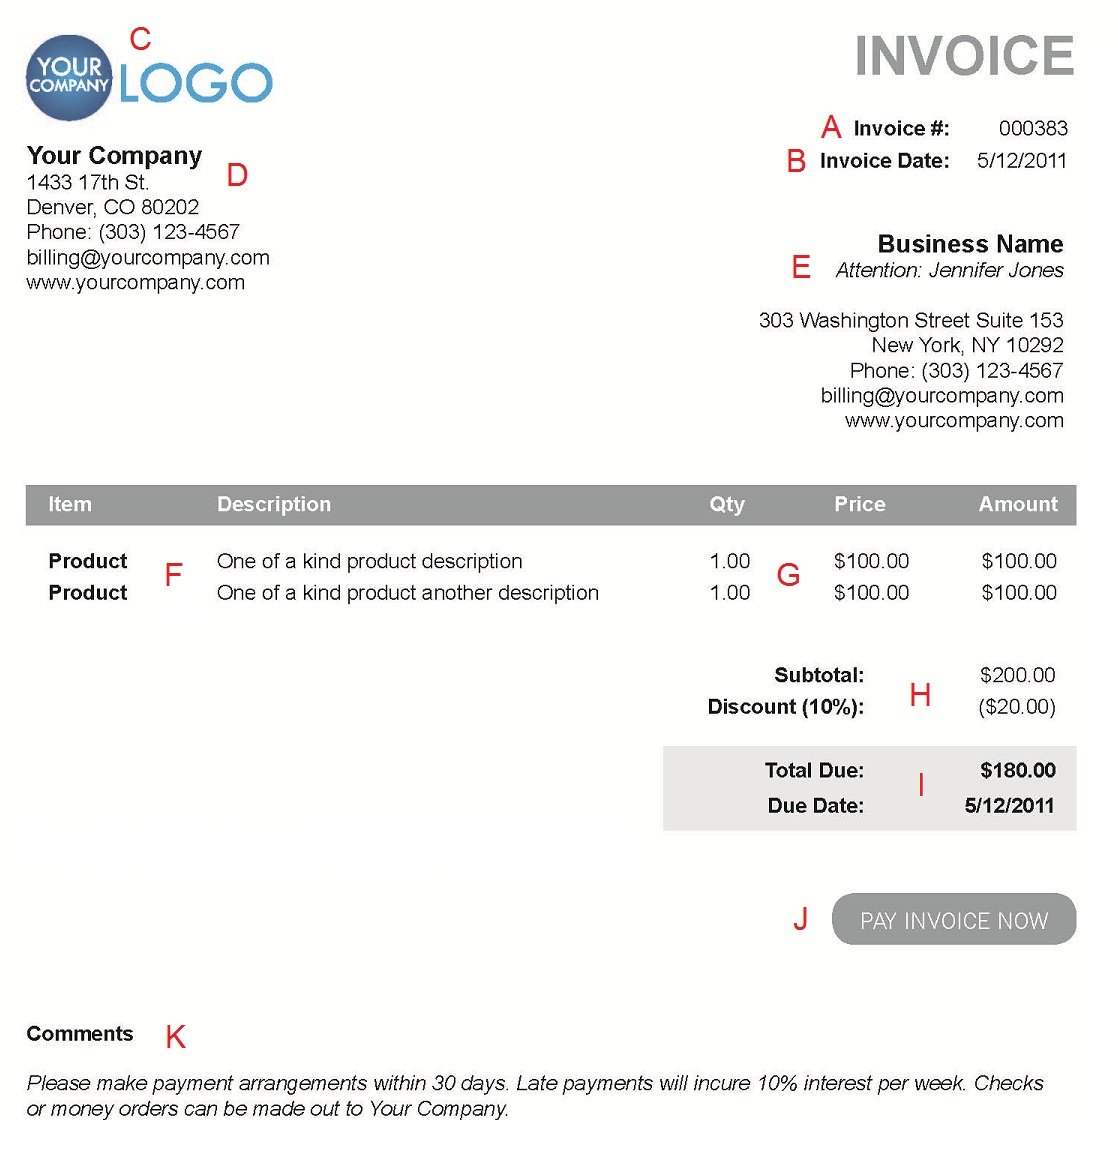 Darkfaderus  Stunning The  Different Sections Of An Electronic Payment Invoice With Remarkable A  With Endearing Receipt Books Walmart Also Cash Receipt Template Pdf In Addition Permanent Resident Card Receipt Number And What Receipts To Save For Taxes As Well As Courtyard Marriott Receipt Additionally Scansnap Receipt Software From Paysimplecom With Darkfaderus  Remarkable The  Different Sections Of An Electronic Payment Invoice With Endearing A  And Stunning Receipt Books Walmart Also Cash Receipt Template Pdf In Addition Permanent Resident Card Receipt Number From Paysimplecom